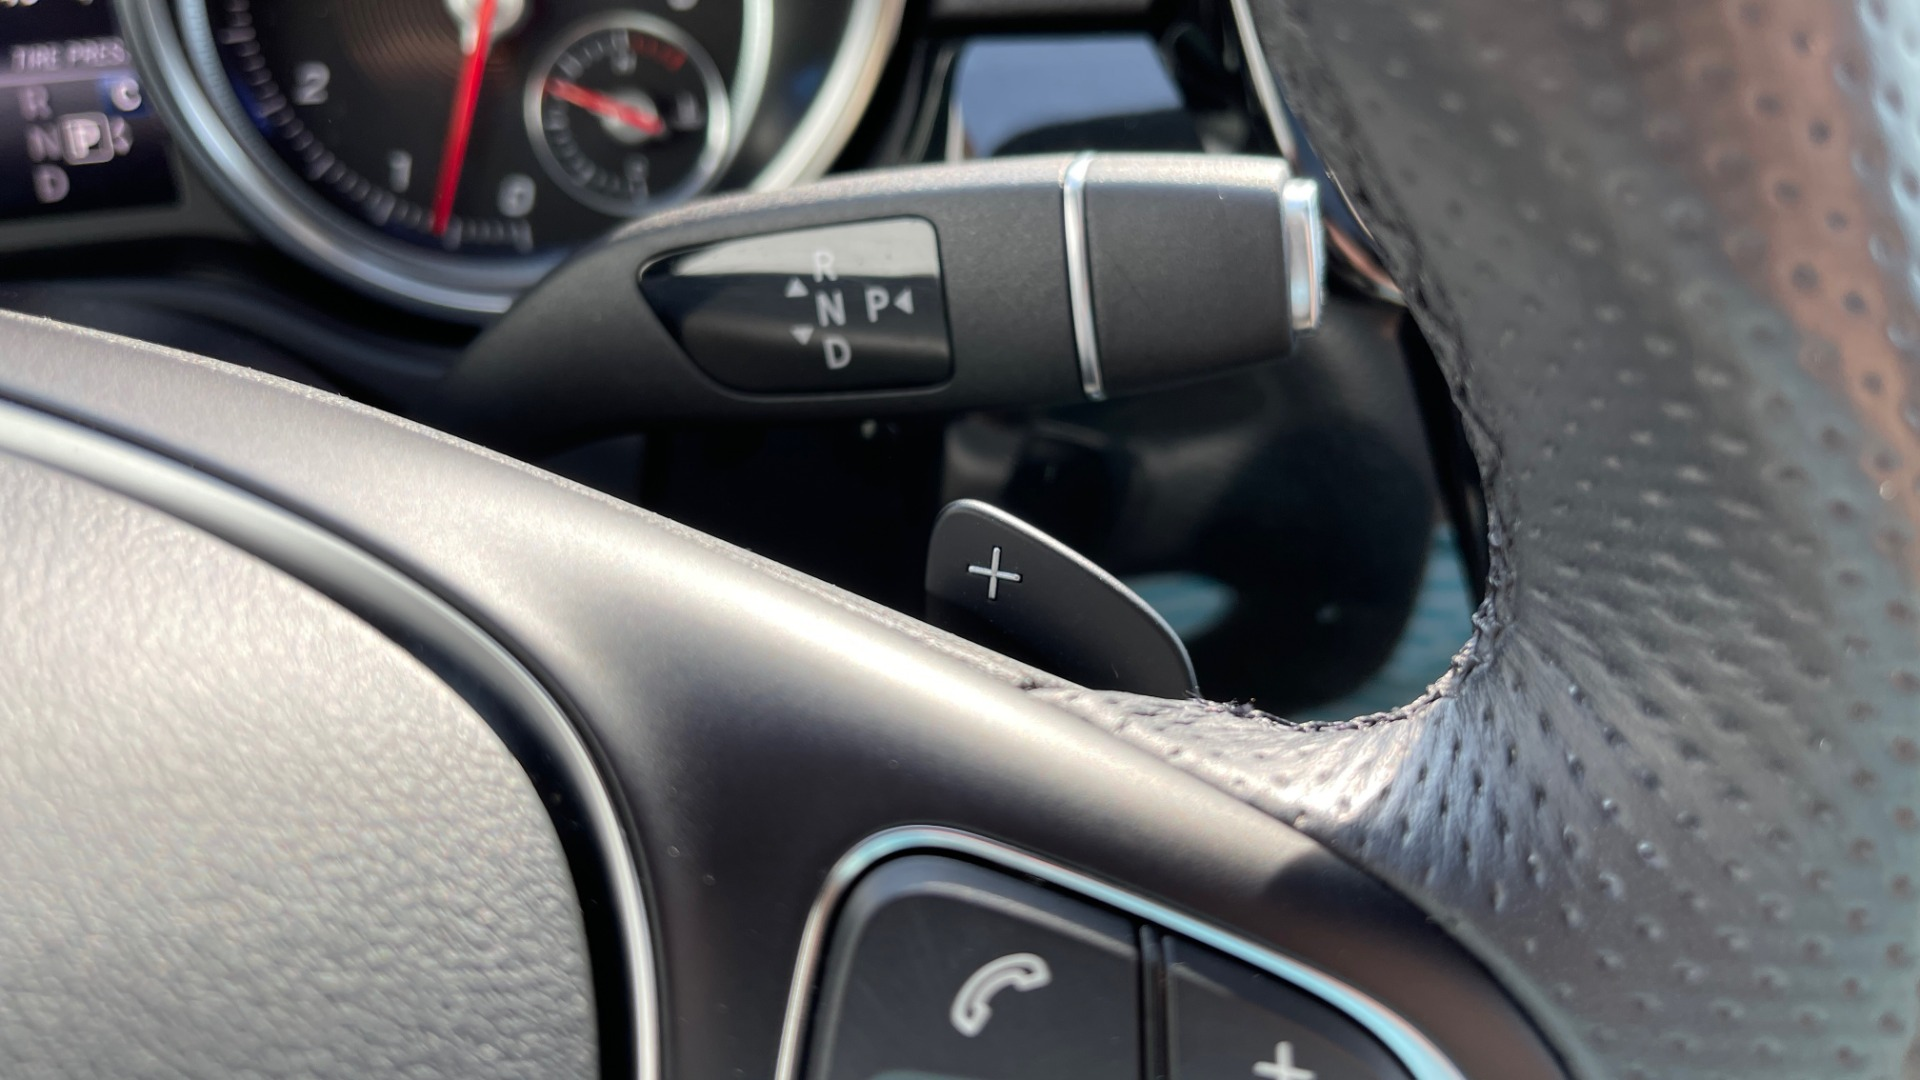 Used 2018 Mercedes-Benz GLE 350 4MATIC PREMIUM / NAV / SUNROOF / HTD STS / TRAILER HITCH / REARVIEW for sale $36,295 at Formula Imports in Charlotte NC 28227 37